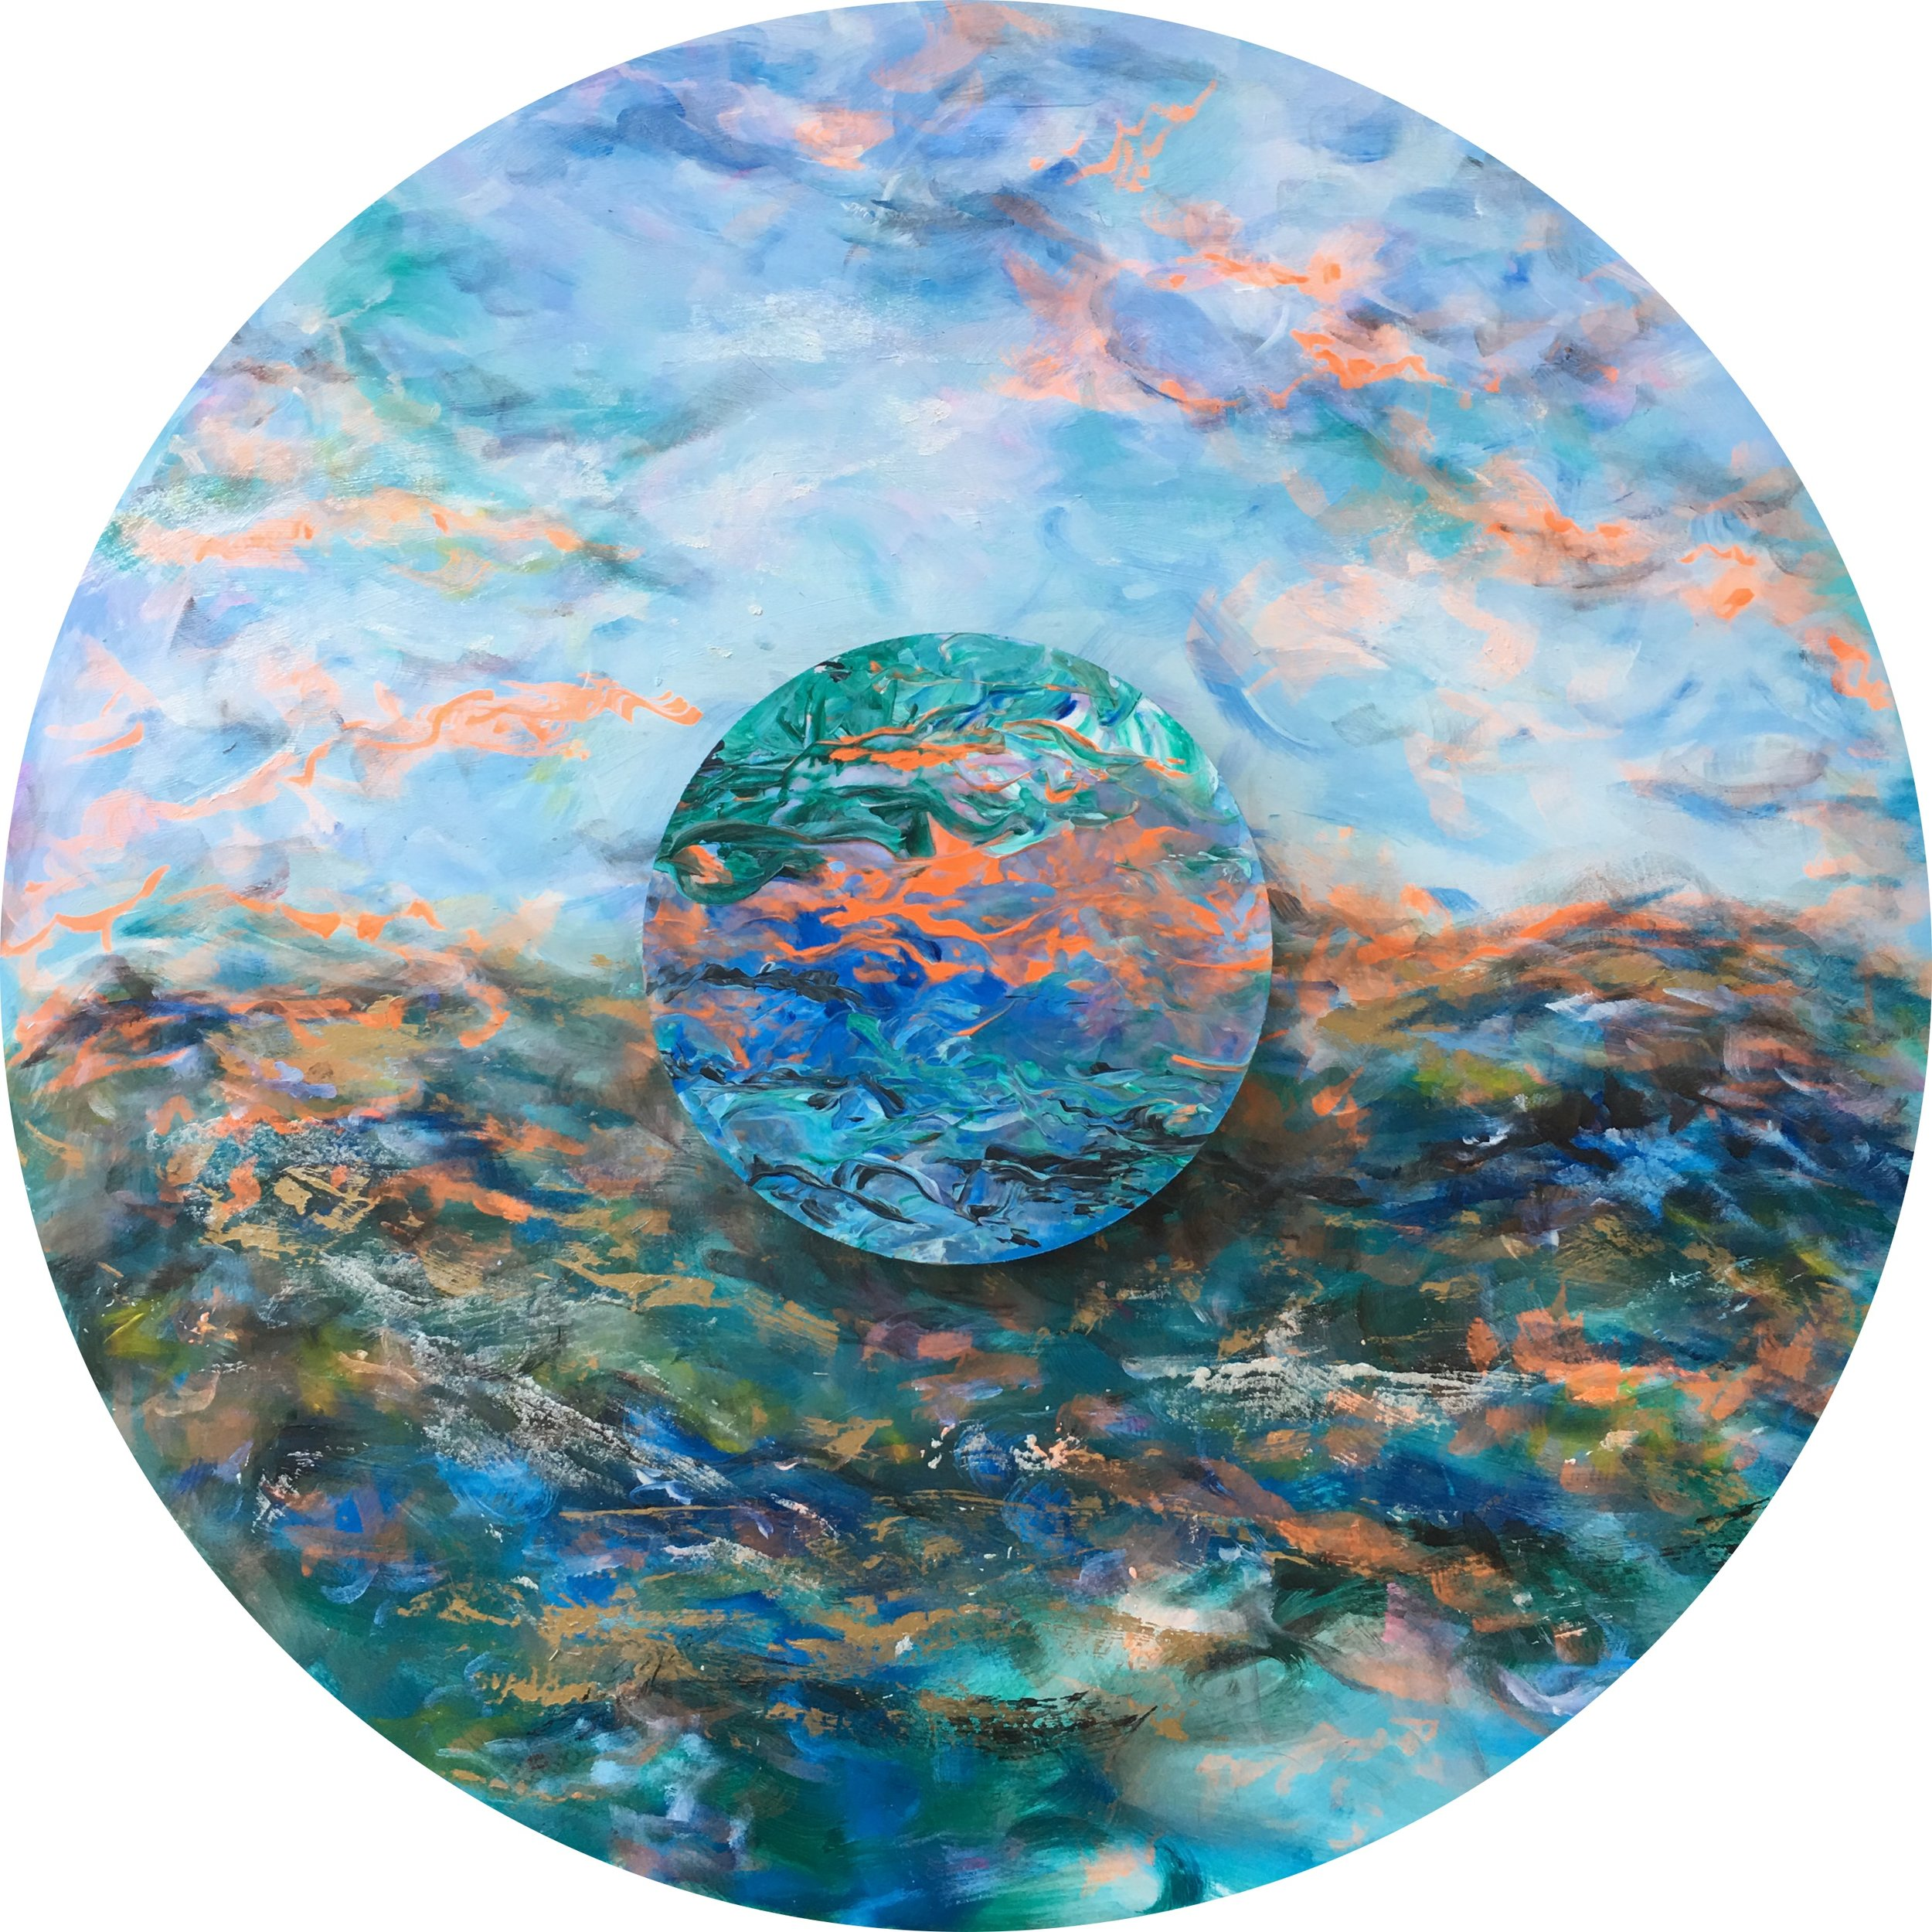 Serenity Disc 4, Sold